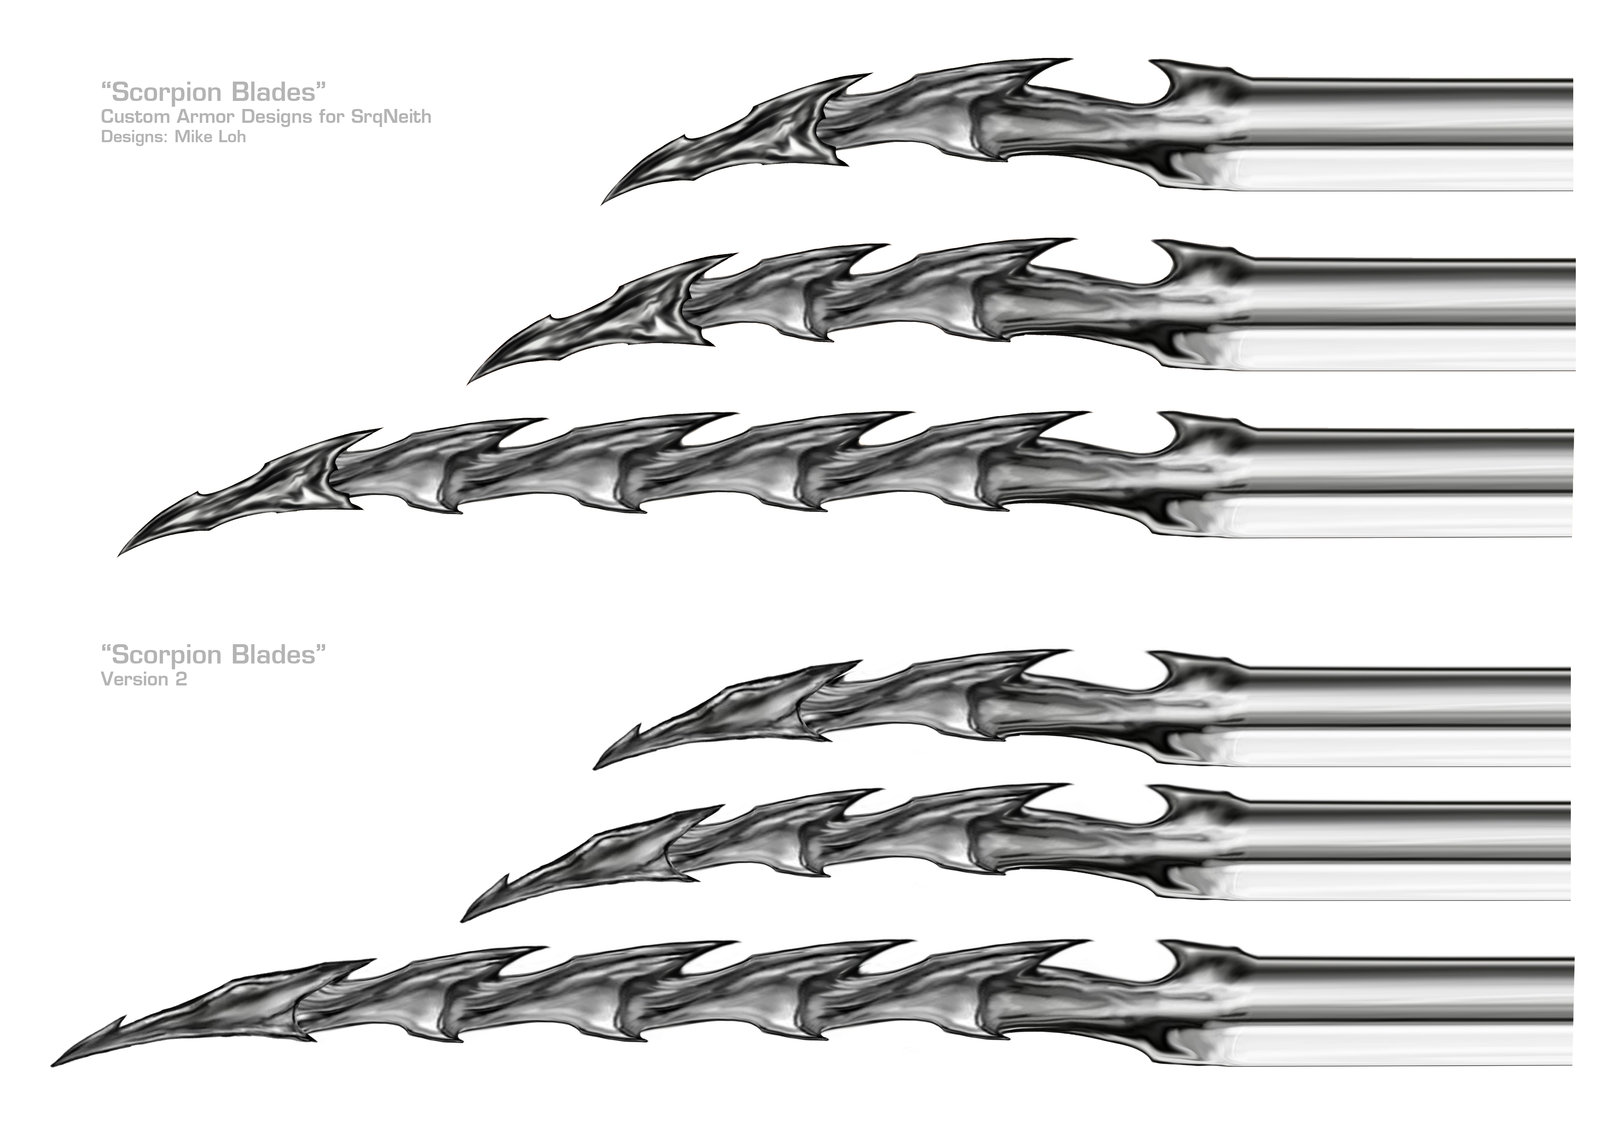 scorpion_blades_by_michaelloh-d2zap1i.jpg